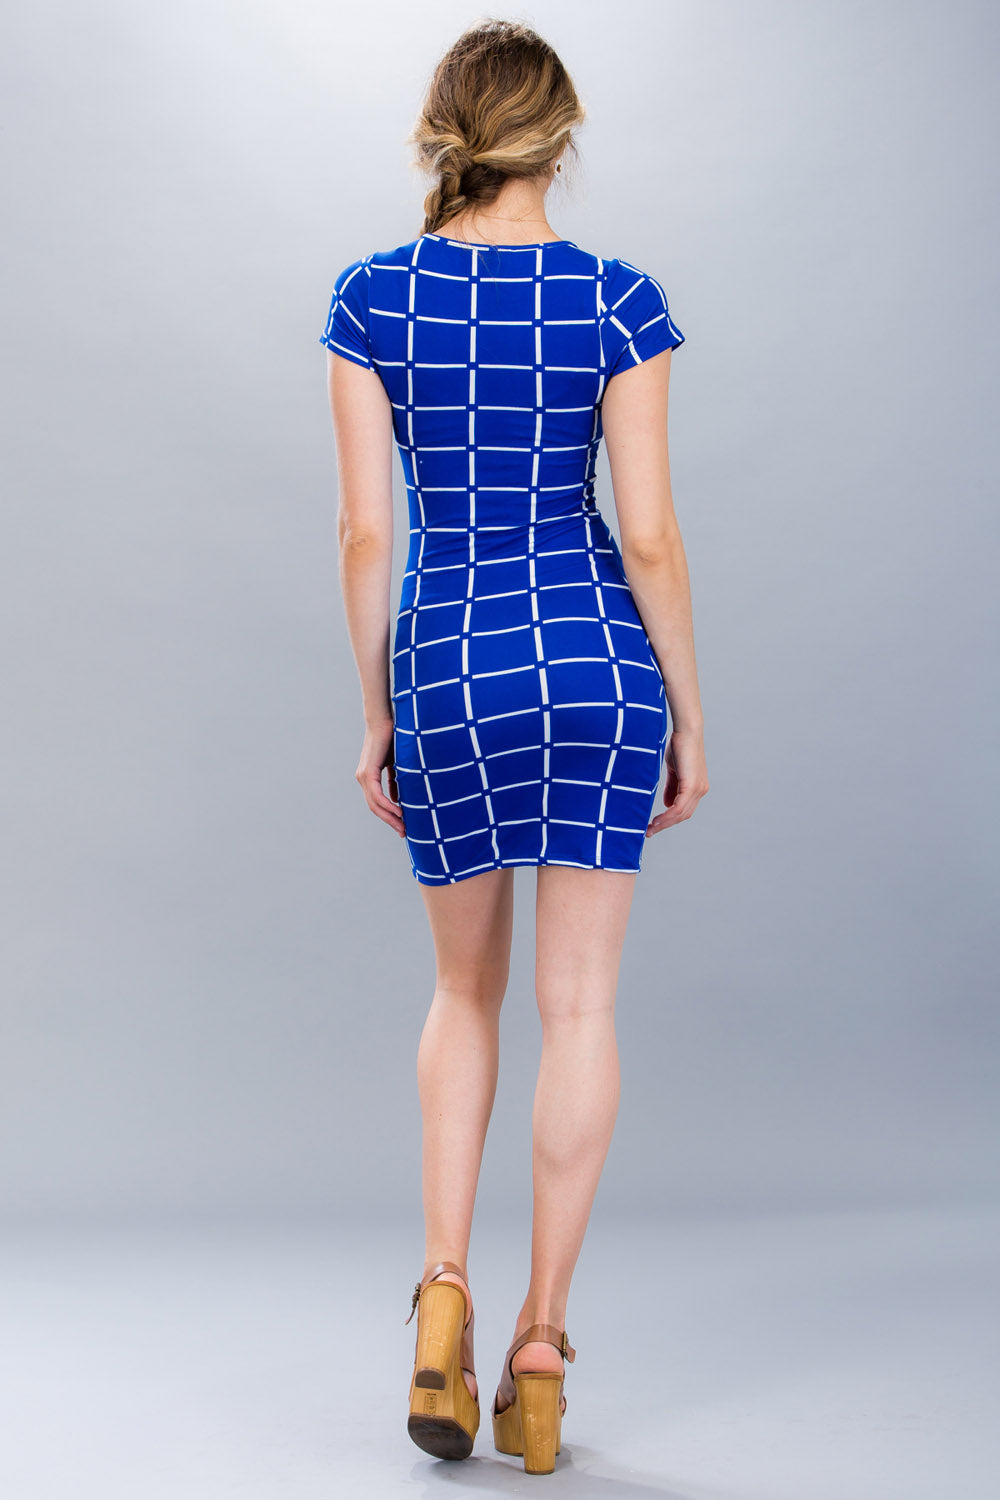 Dress - BD2214 - Capella Apparel